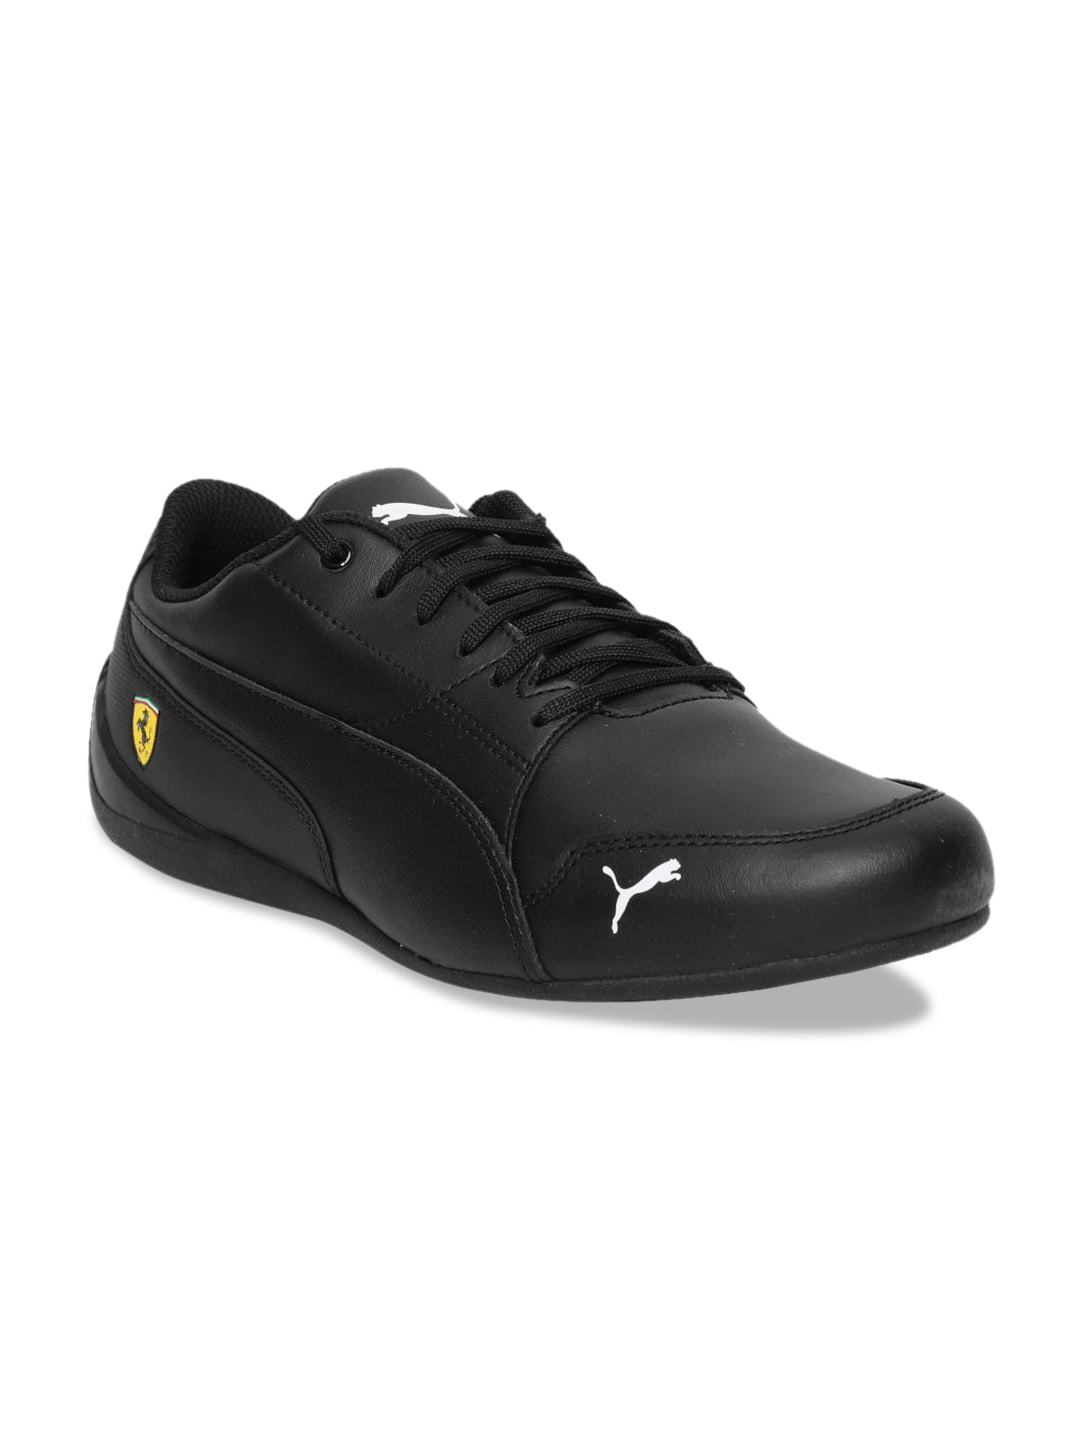 8b688a424de Buy Puma Kids Black SF Drift Cat 7S Ultra JR Sneakers - Casual Shoes ...